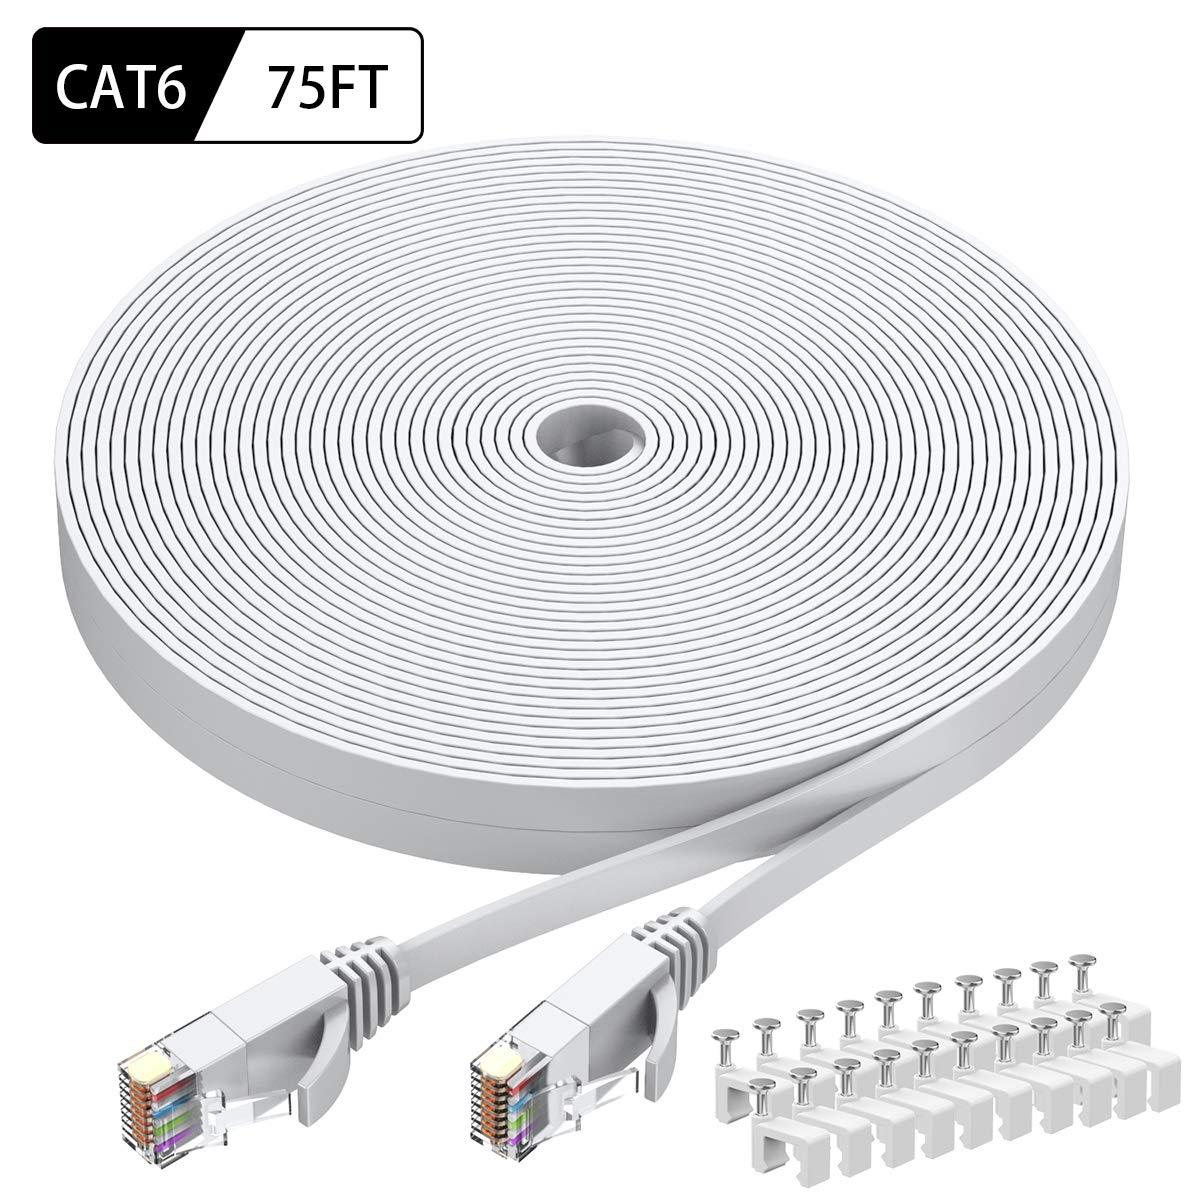 Cat6 Ethernet Cable 75 FT White, BUSOHE Cat-6 Flat RJ45 Computer Internet LAN Network Ethernet Patch Cable Cord - 75 Feet by BUSOHE